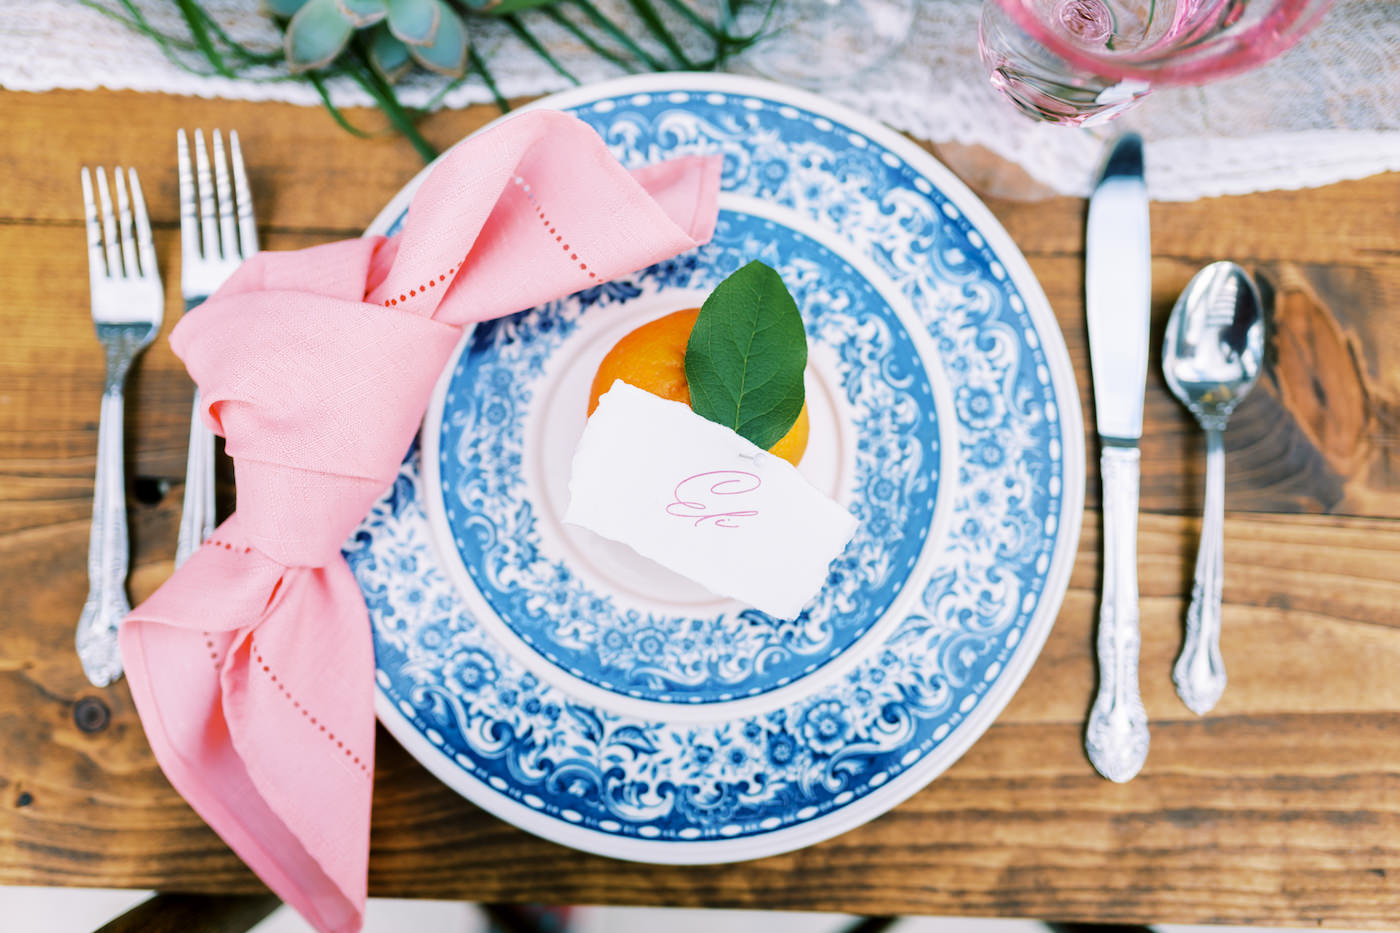 Bright Colorful Florida Citrus Wedding Inspiration | Wedding Place Settings with Vintage Blue China and Pink Hemstitch Knot Napkins and Citrus Orange Place Cards